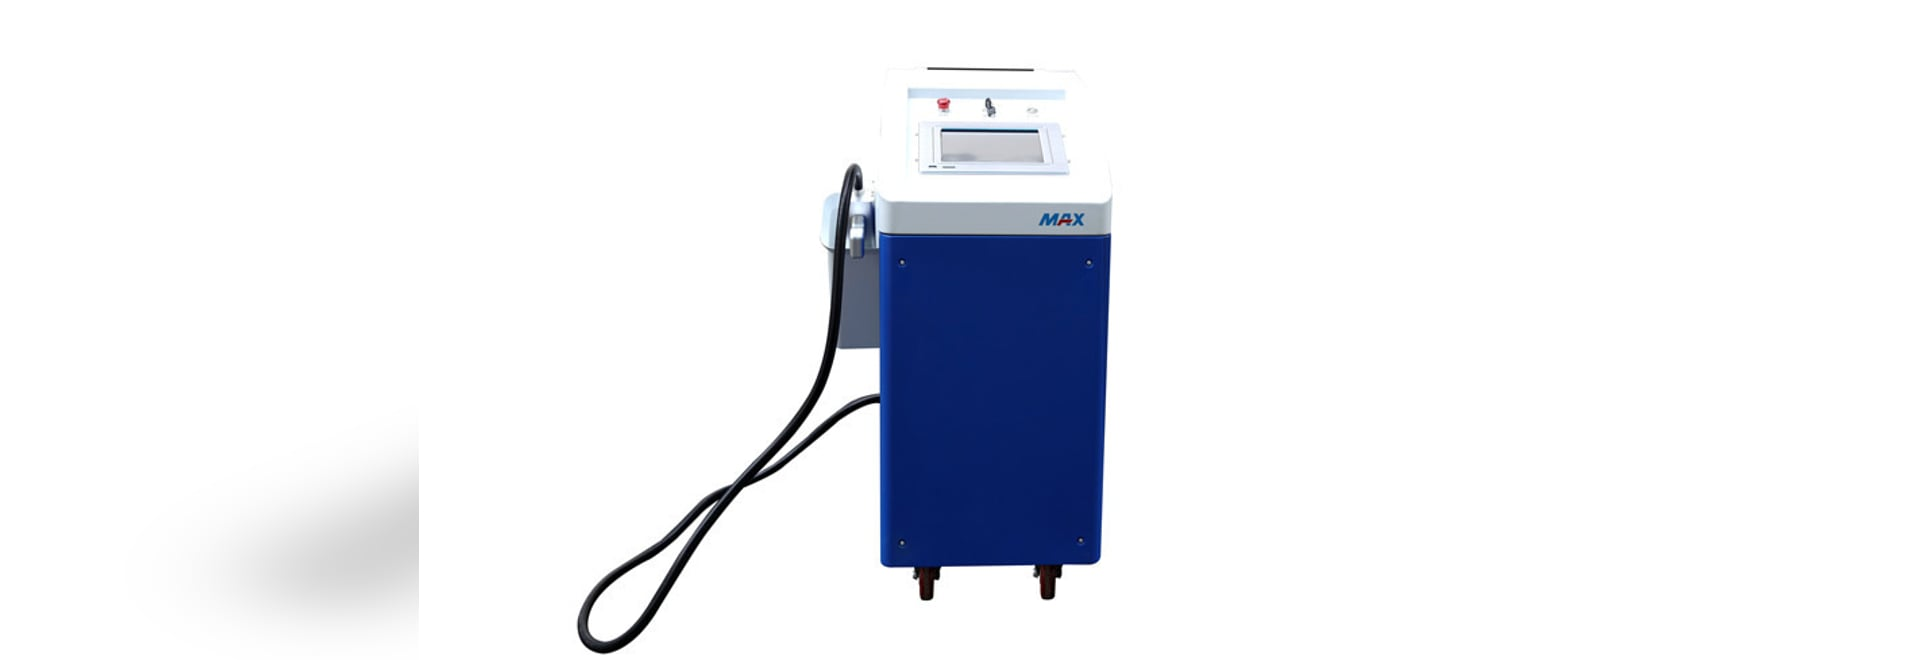 100W Fiber Laser Cleaning System for Rust Removal - Shenzhen